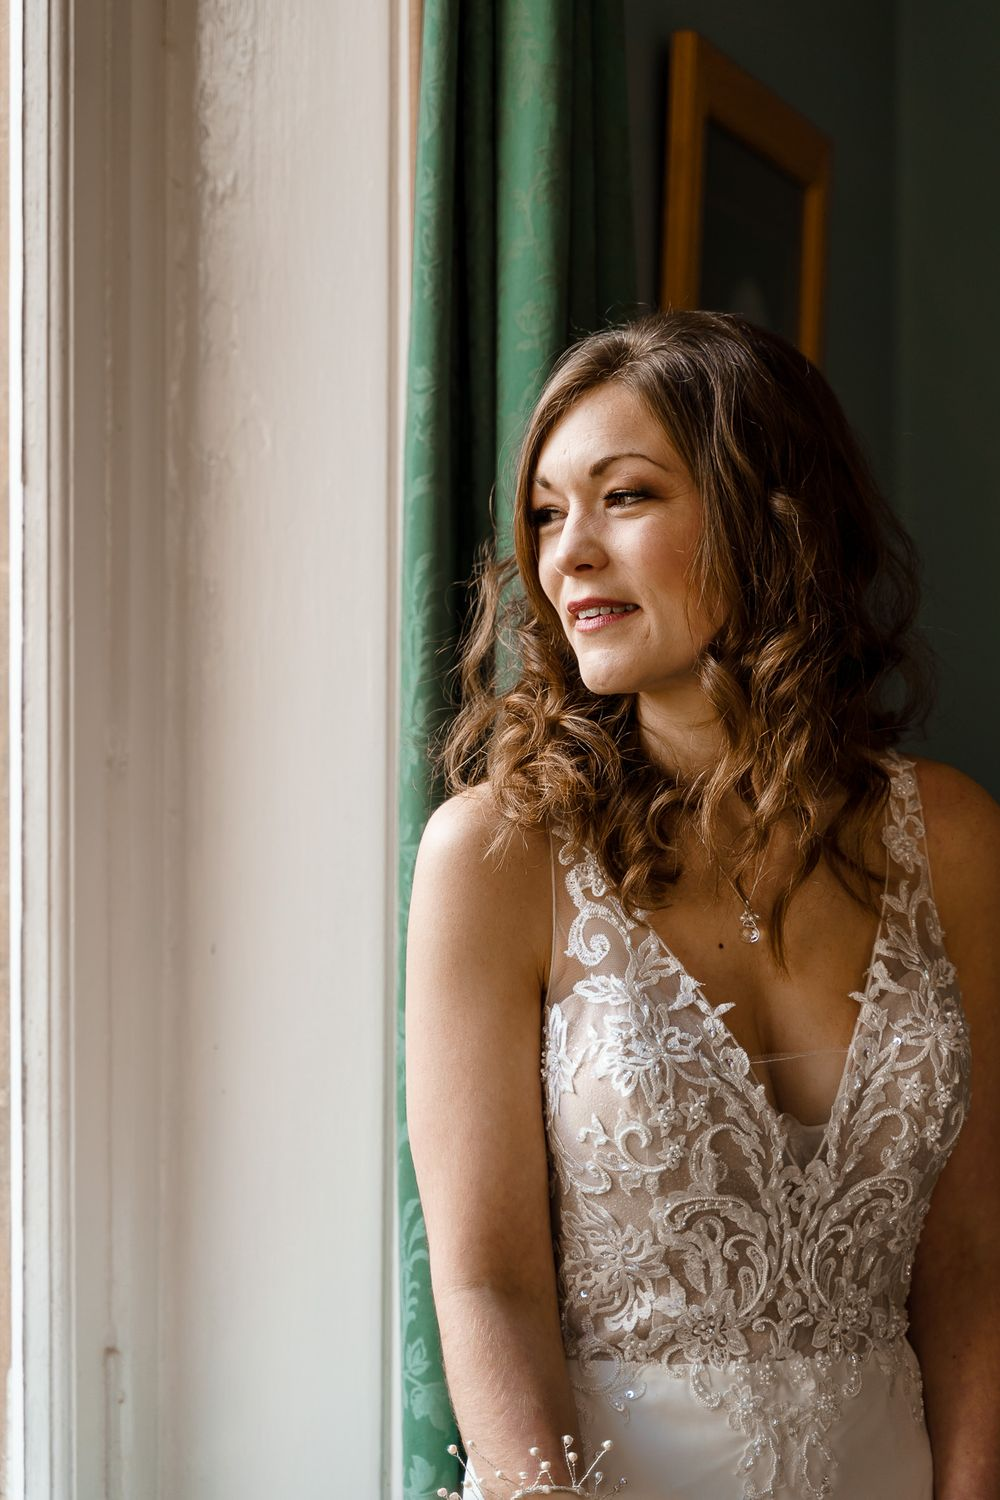 Winchester wedding photography - bride looks whistfully out of the window.